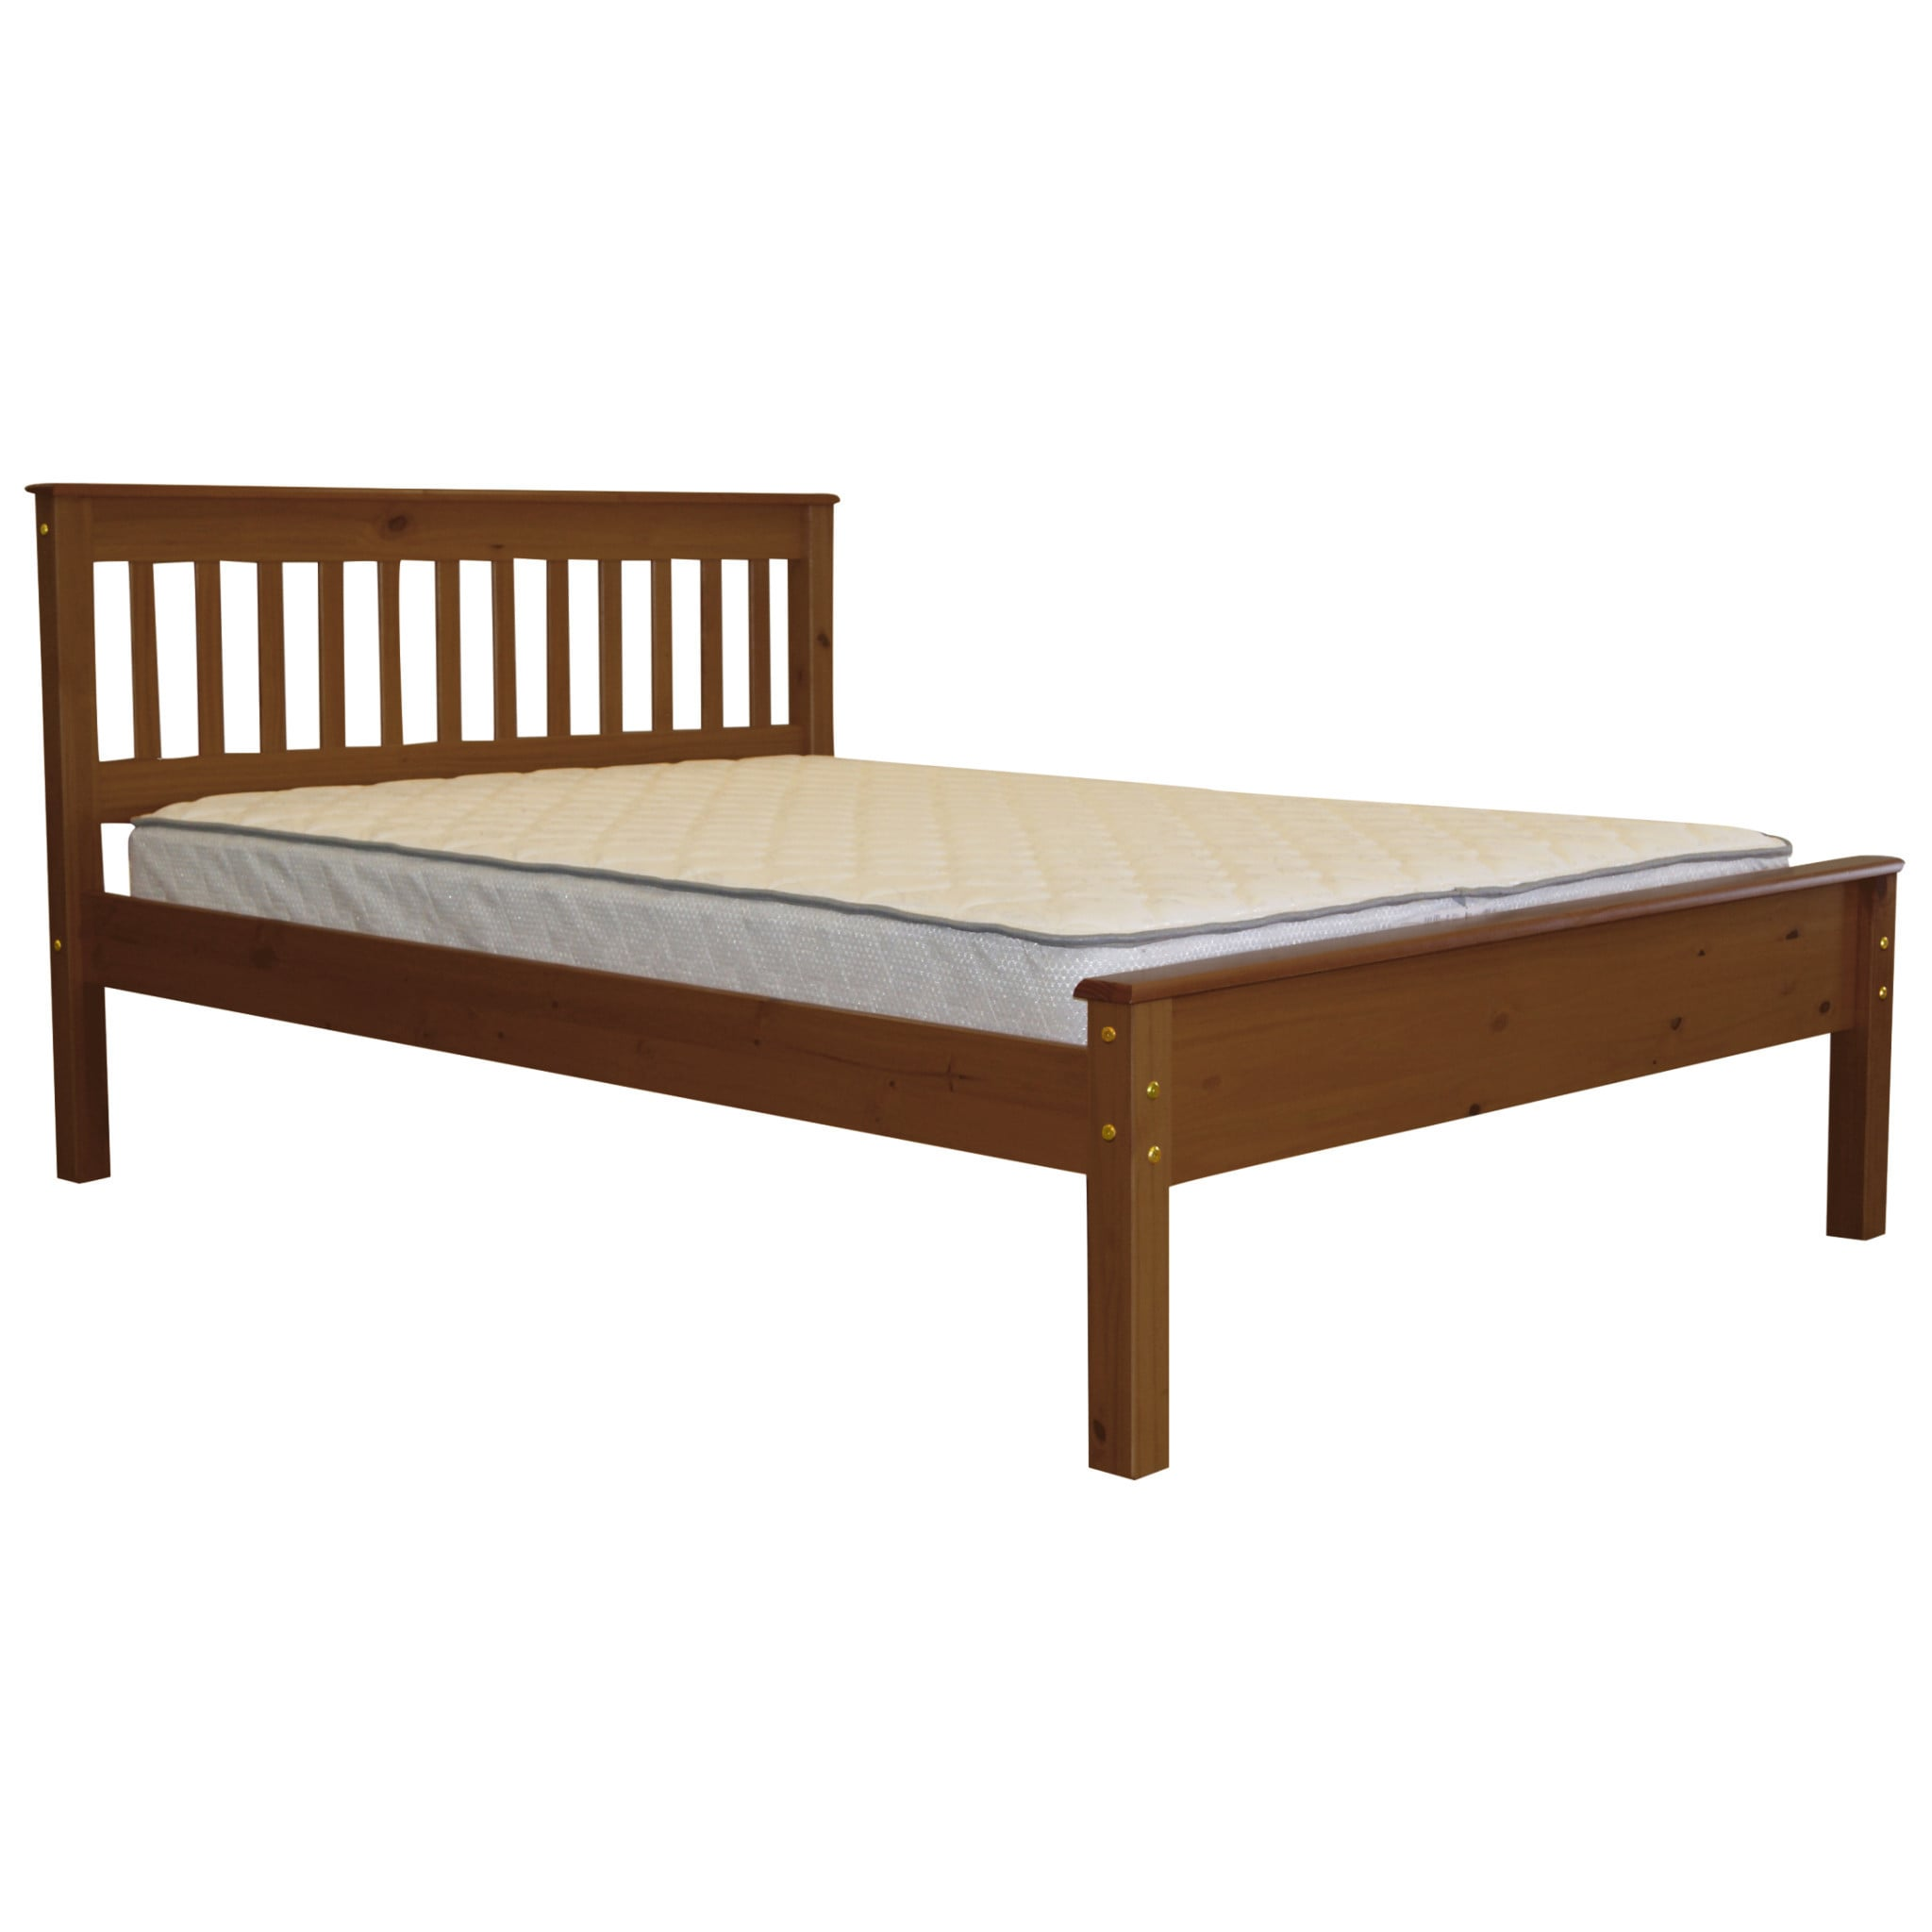 Bedz King Full Bed Expresso (Full - Espresso), Brown